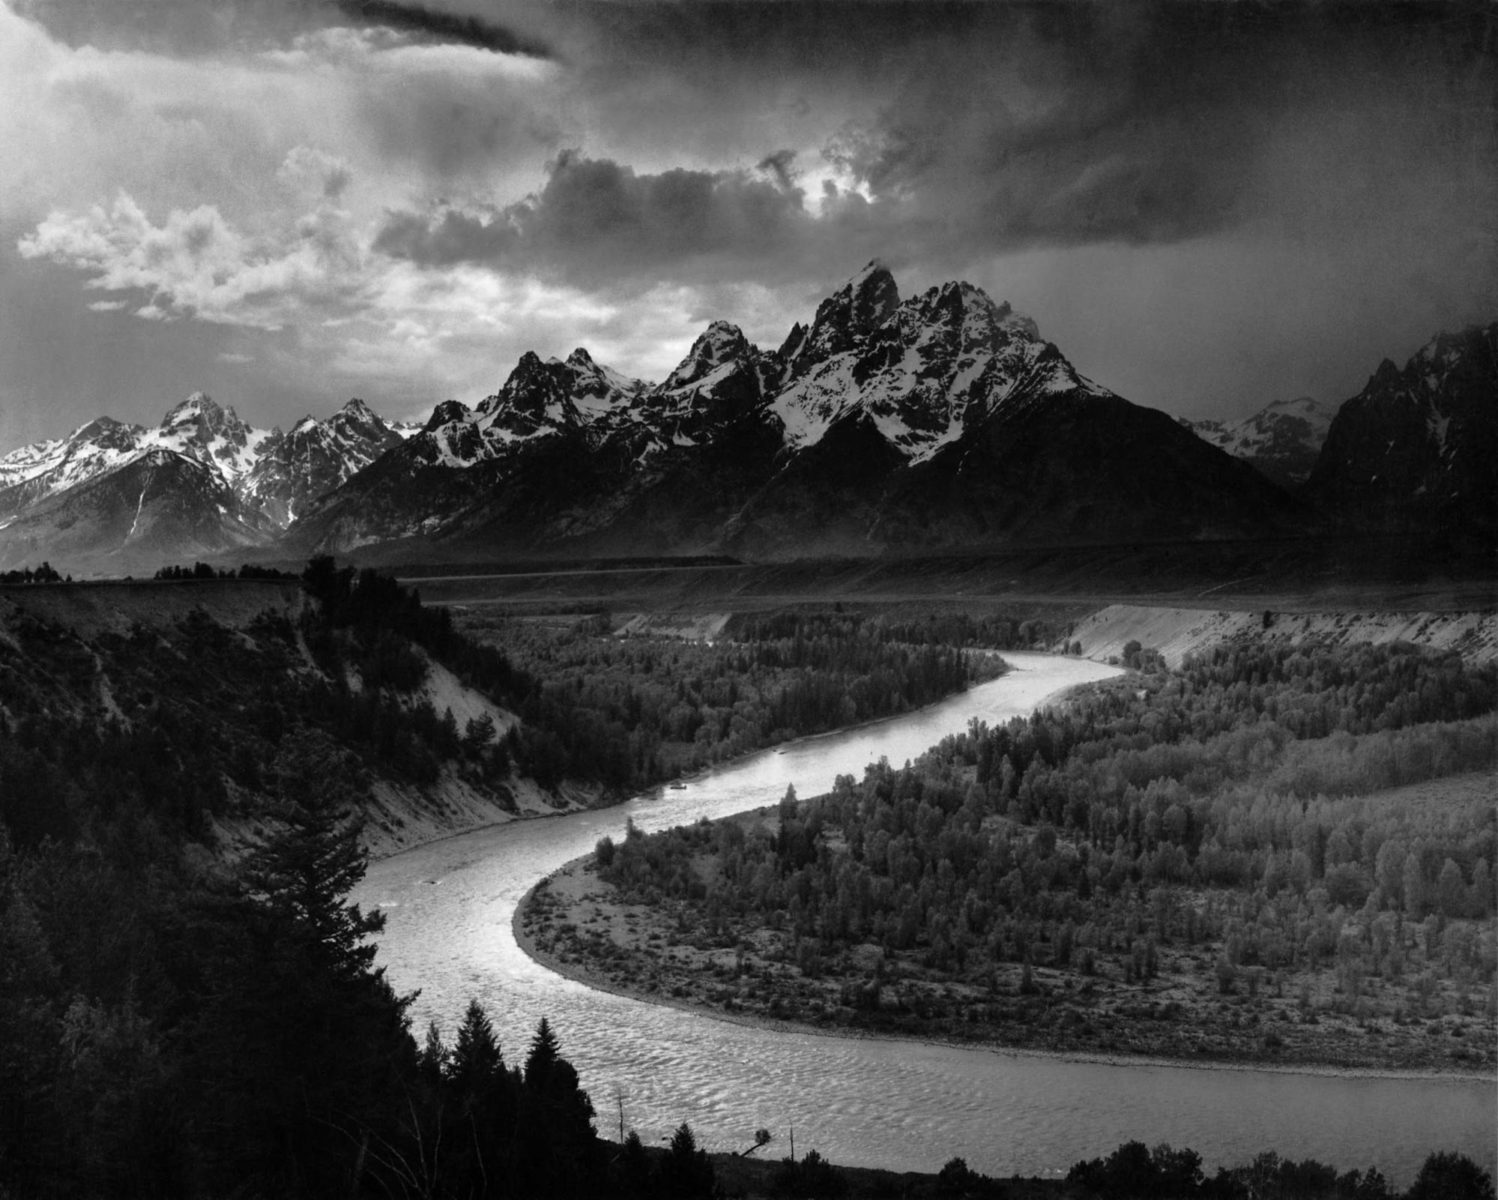 The Tetons and the Snake River, Wyoming, 1942 © Ansel Adams